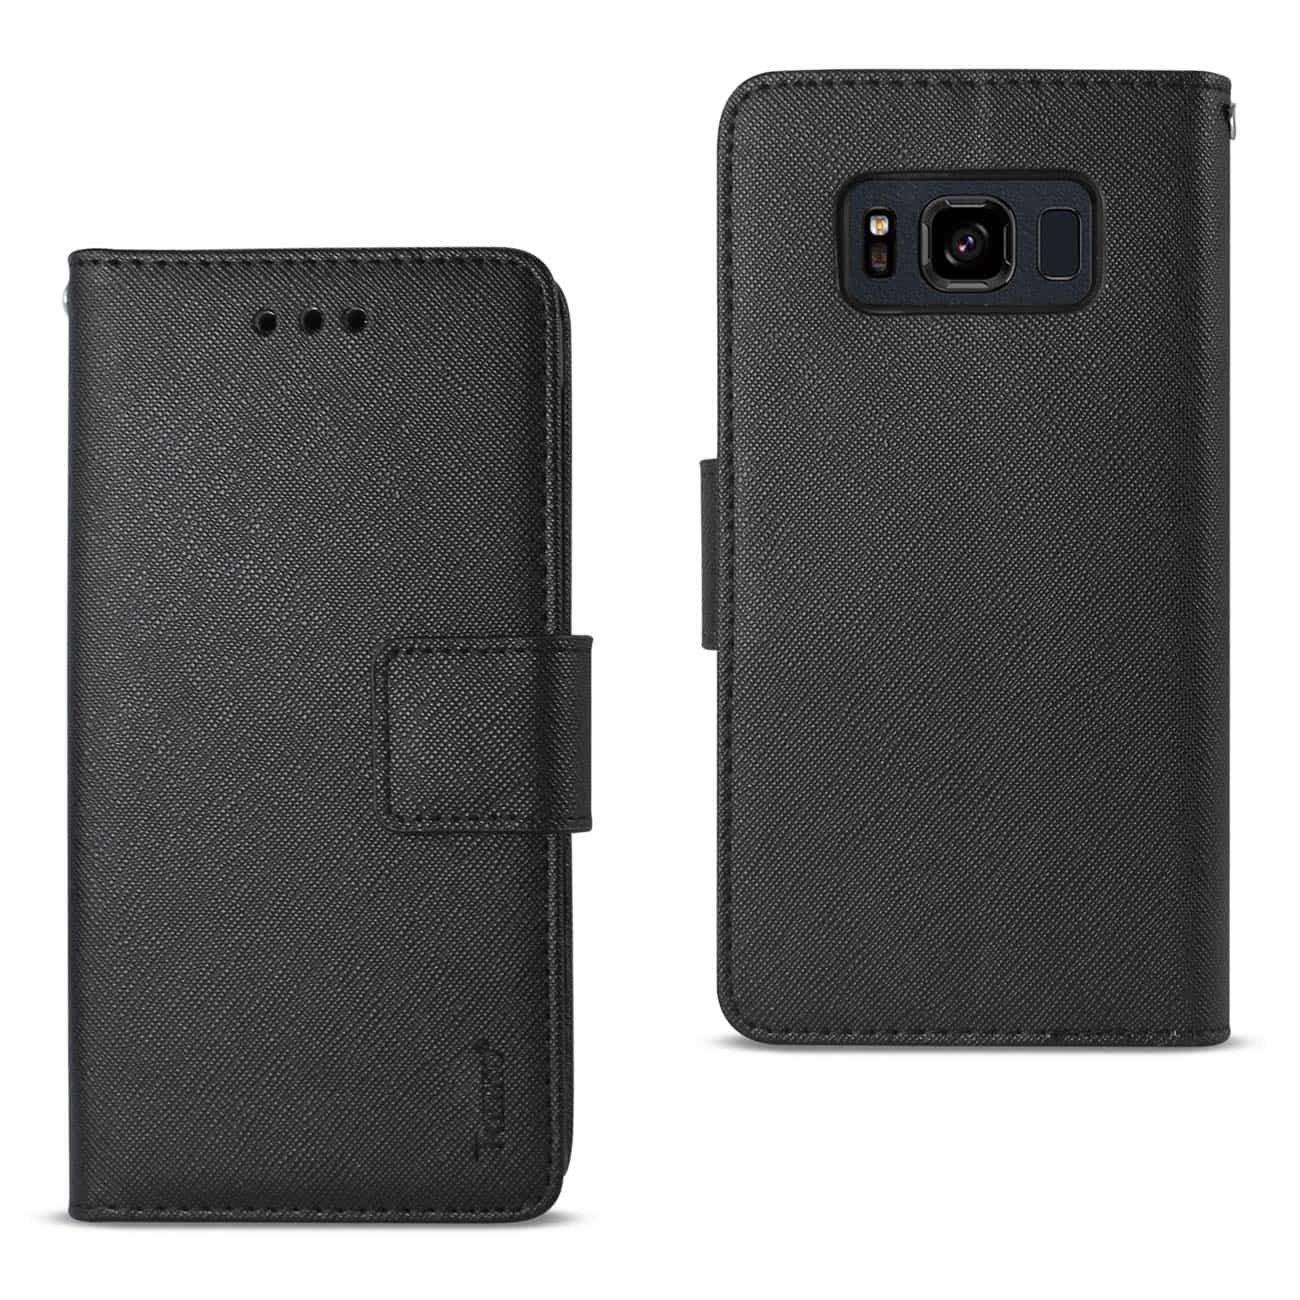 SAMSUNG GALAXY S8 ACTIVE 3-IN-1 WALLET CASE IN BLACK